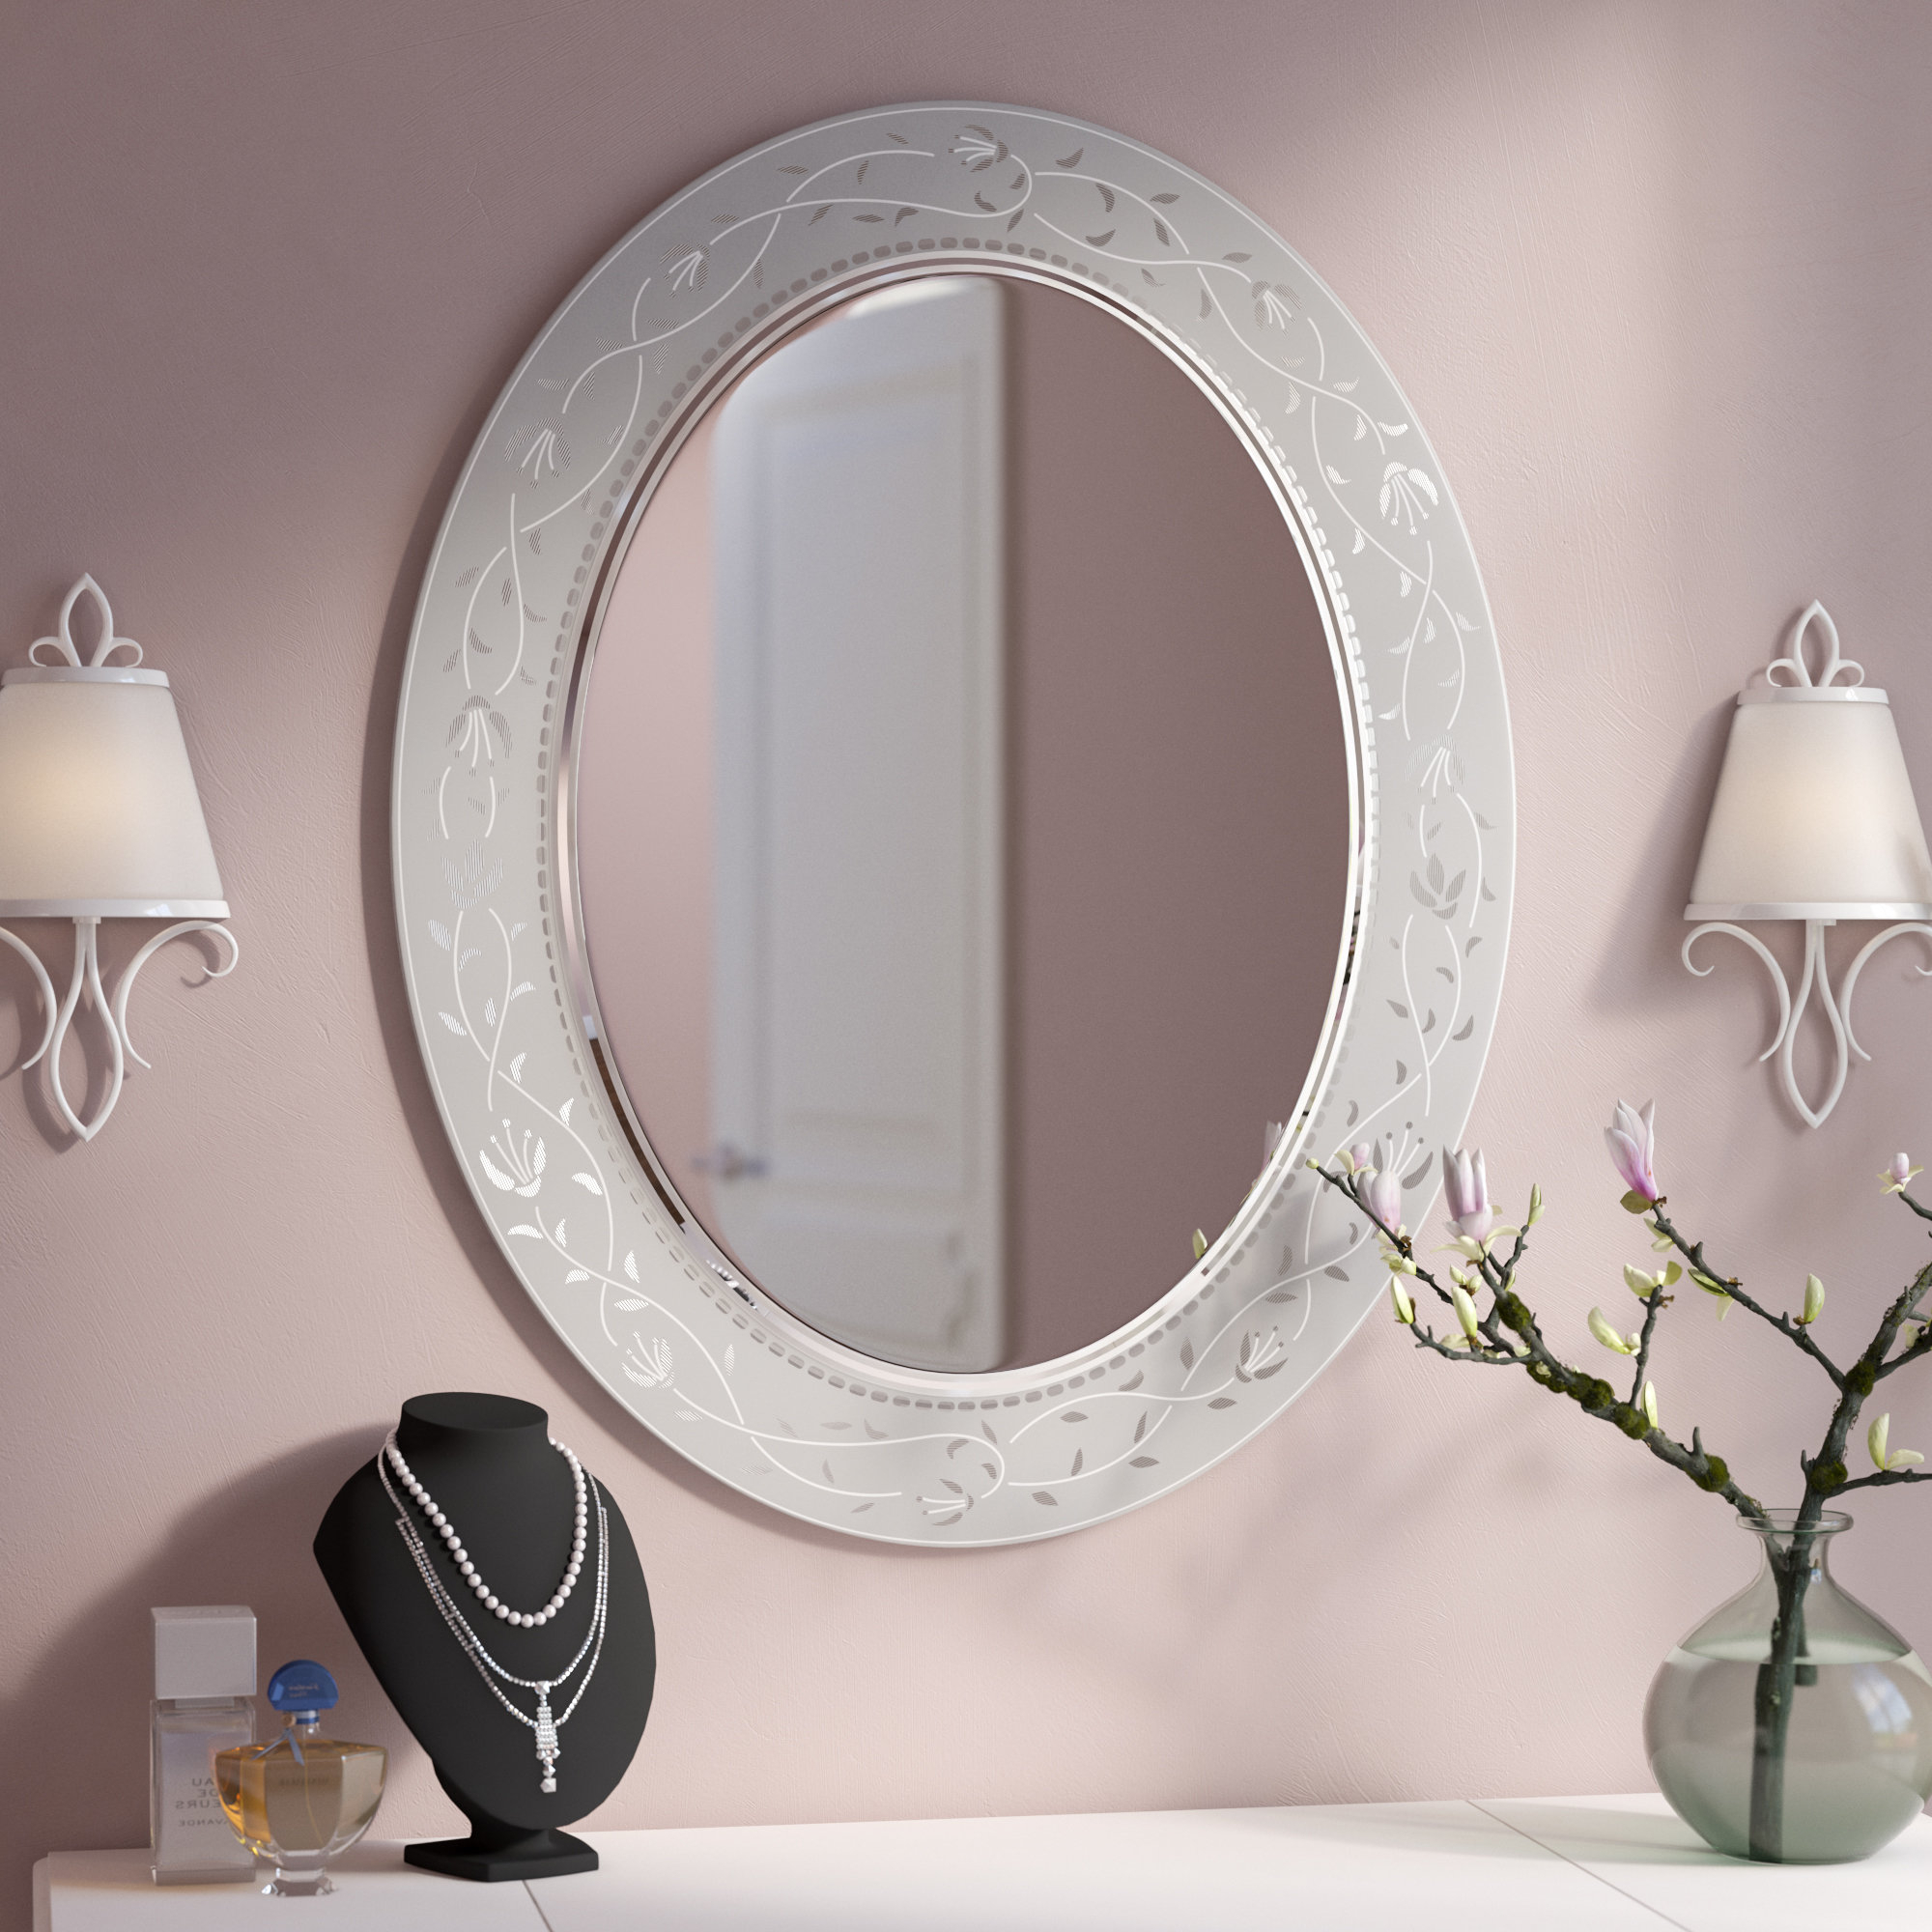 Latest Morandiere Etched Border Bathroom/vanity Mirror Pertaining To Etched Wall Mirrors (Gallery 20 of 20)